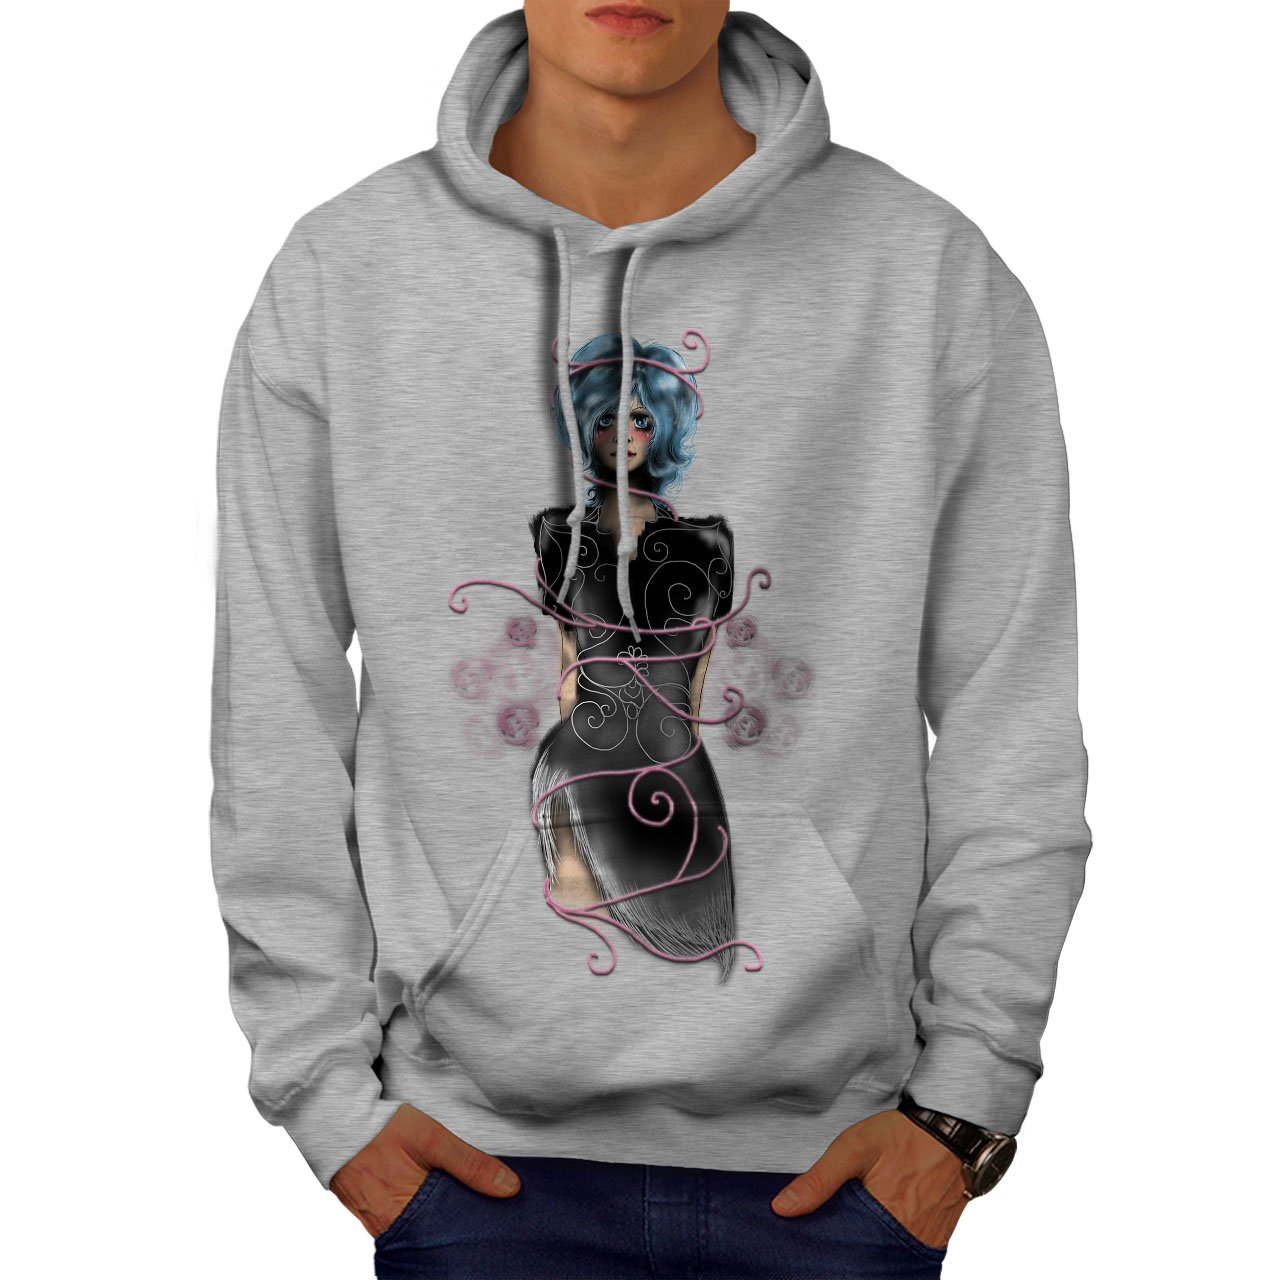 Scary Hooded Sweatshirt wellcoda Girl Mystic Being Mens Hoodie